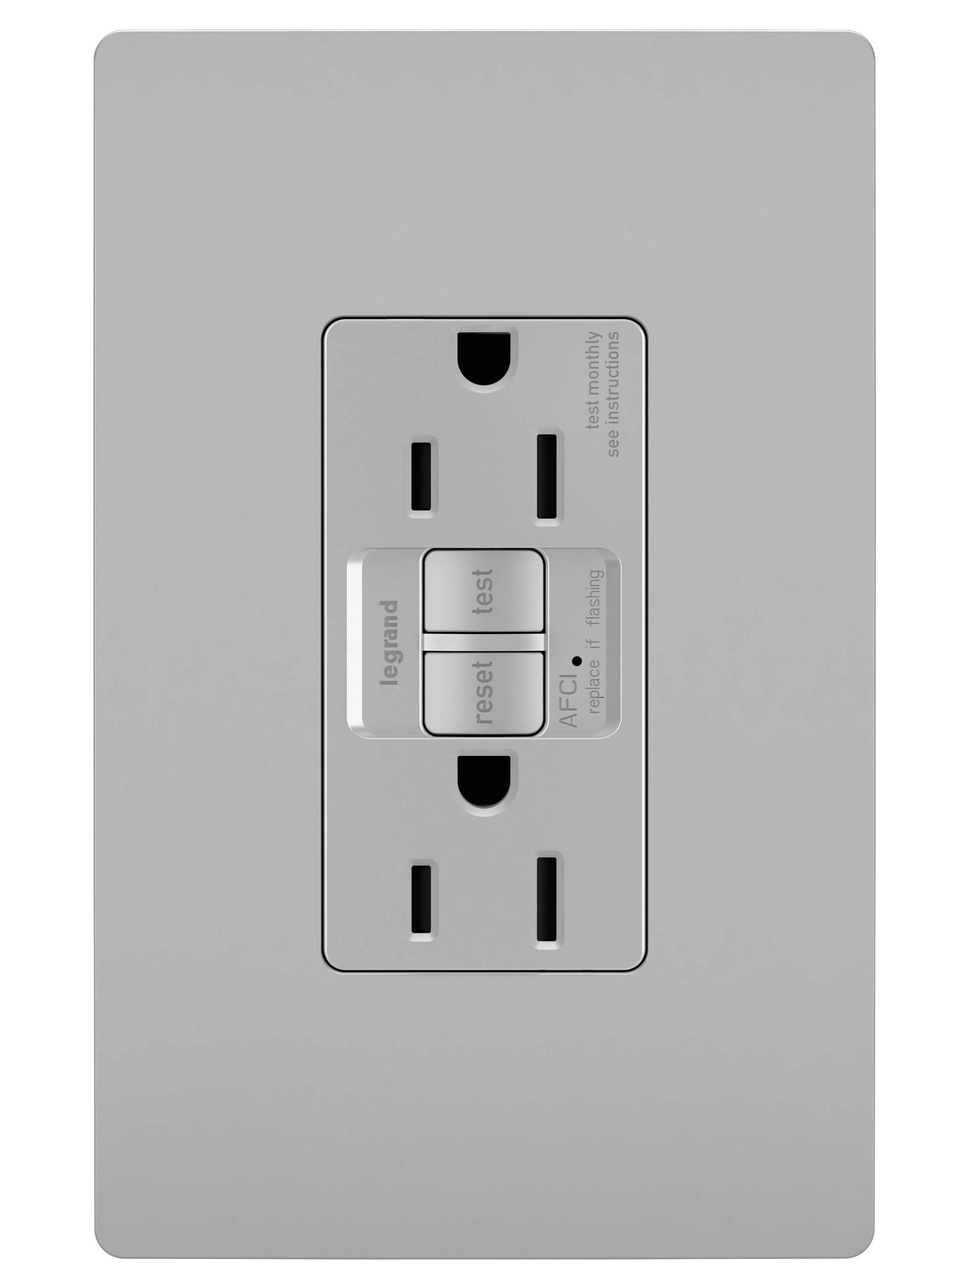 Light Switch Home Wiring Diagram Afci Schematics Gfci And Electrical Radiant Dual Function Tamper Resistant Receptacle Gray Basic Diagrams